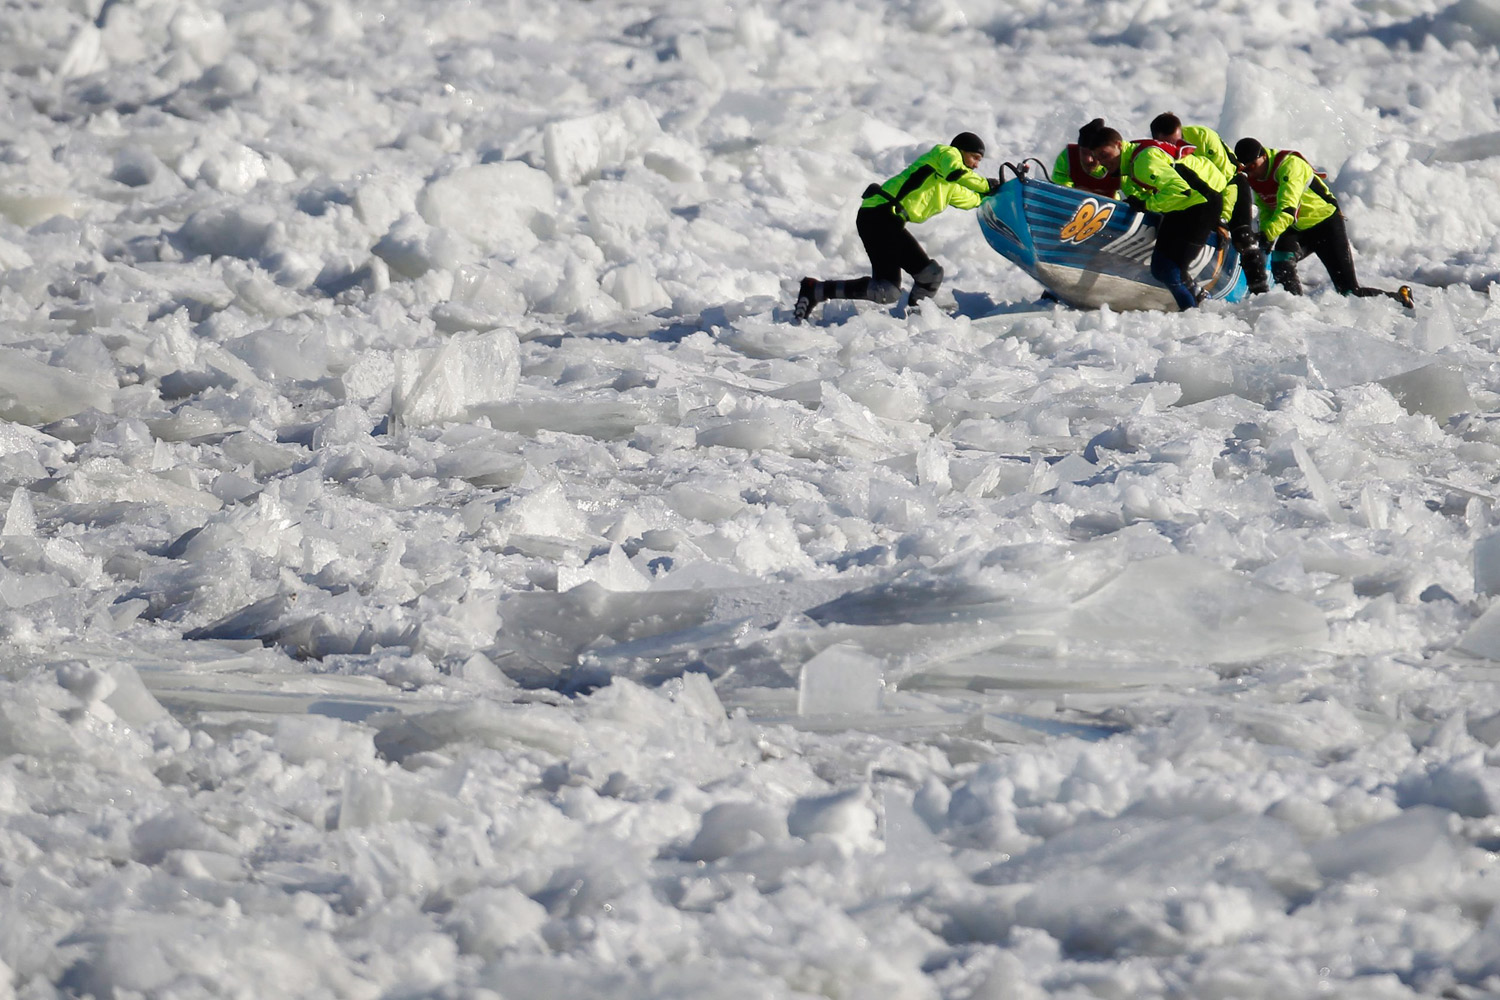 February 5, 2012. Team Innovex competes during the ice canoe race at the Quebec Winter Carnival in Quebec City.